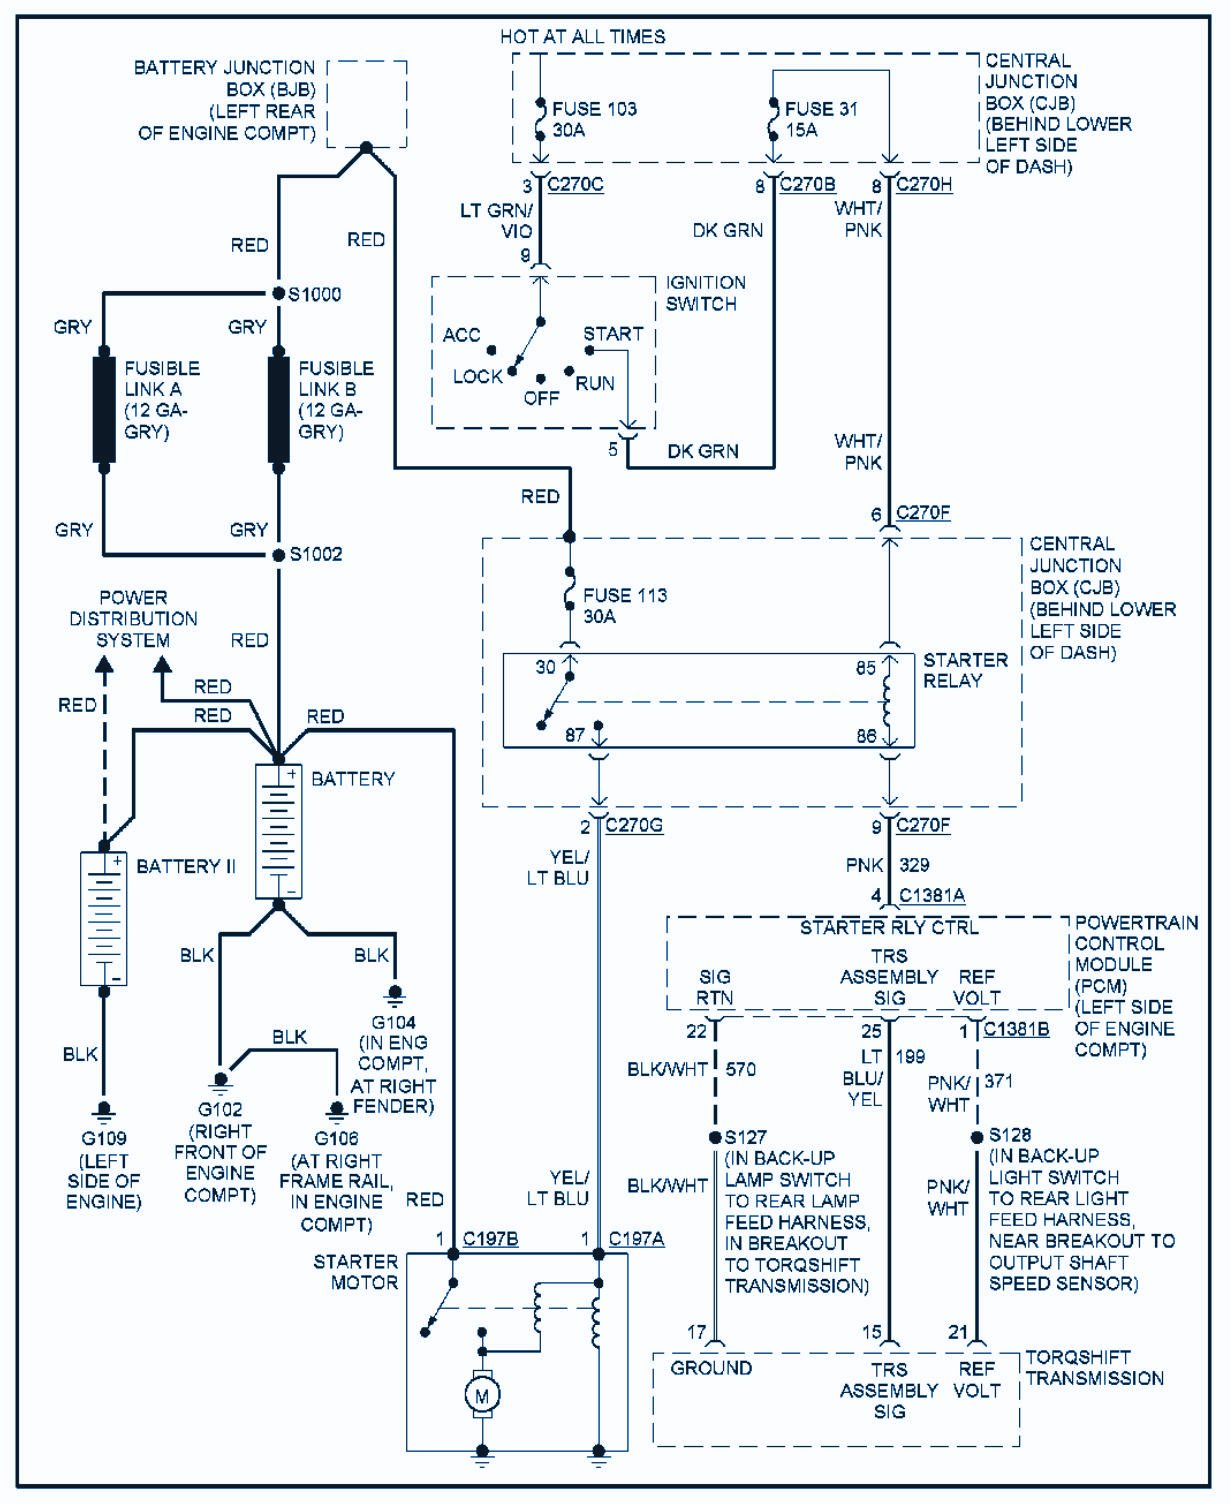 2006 Ford F 350 Wiring Diagram Wiring Diagram Page Fat Best A Fat Best A Granballodicomo It